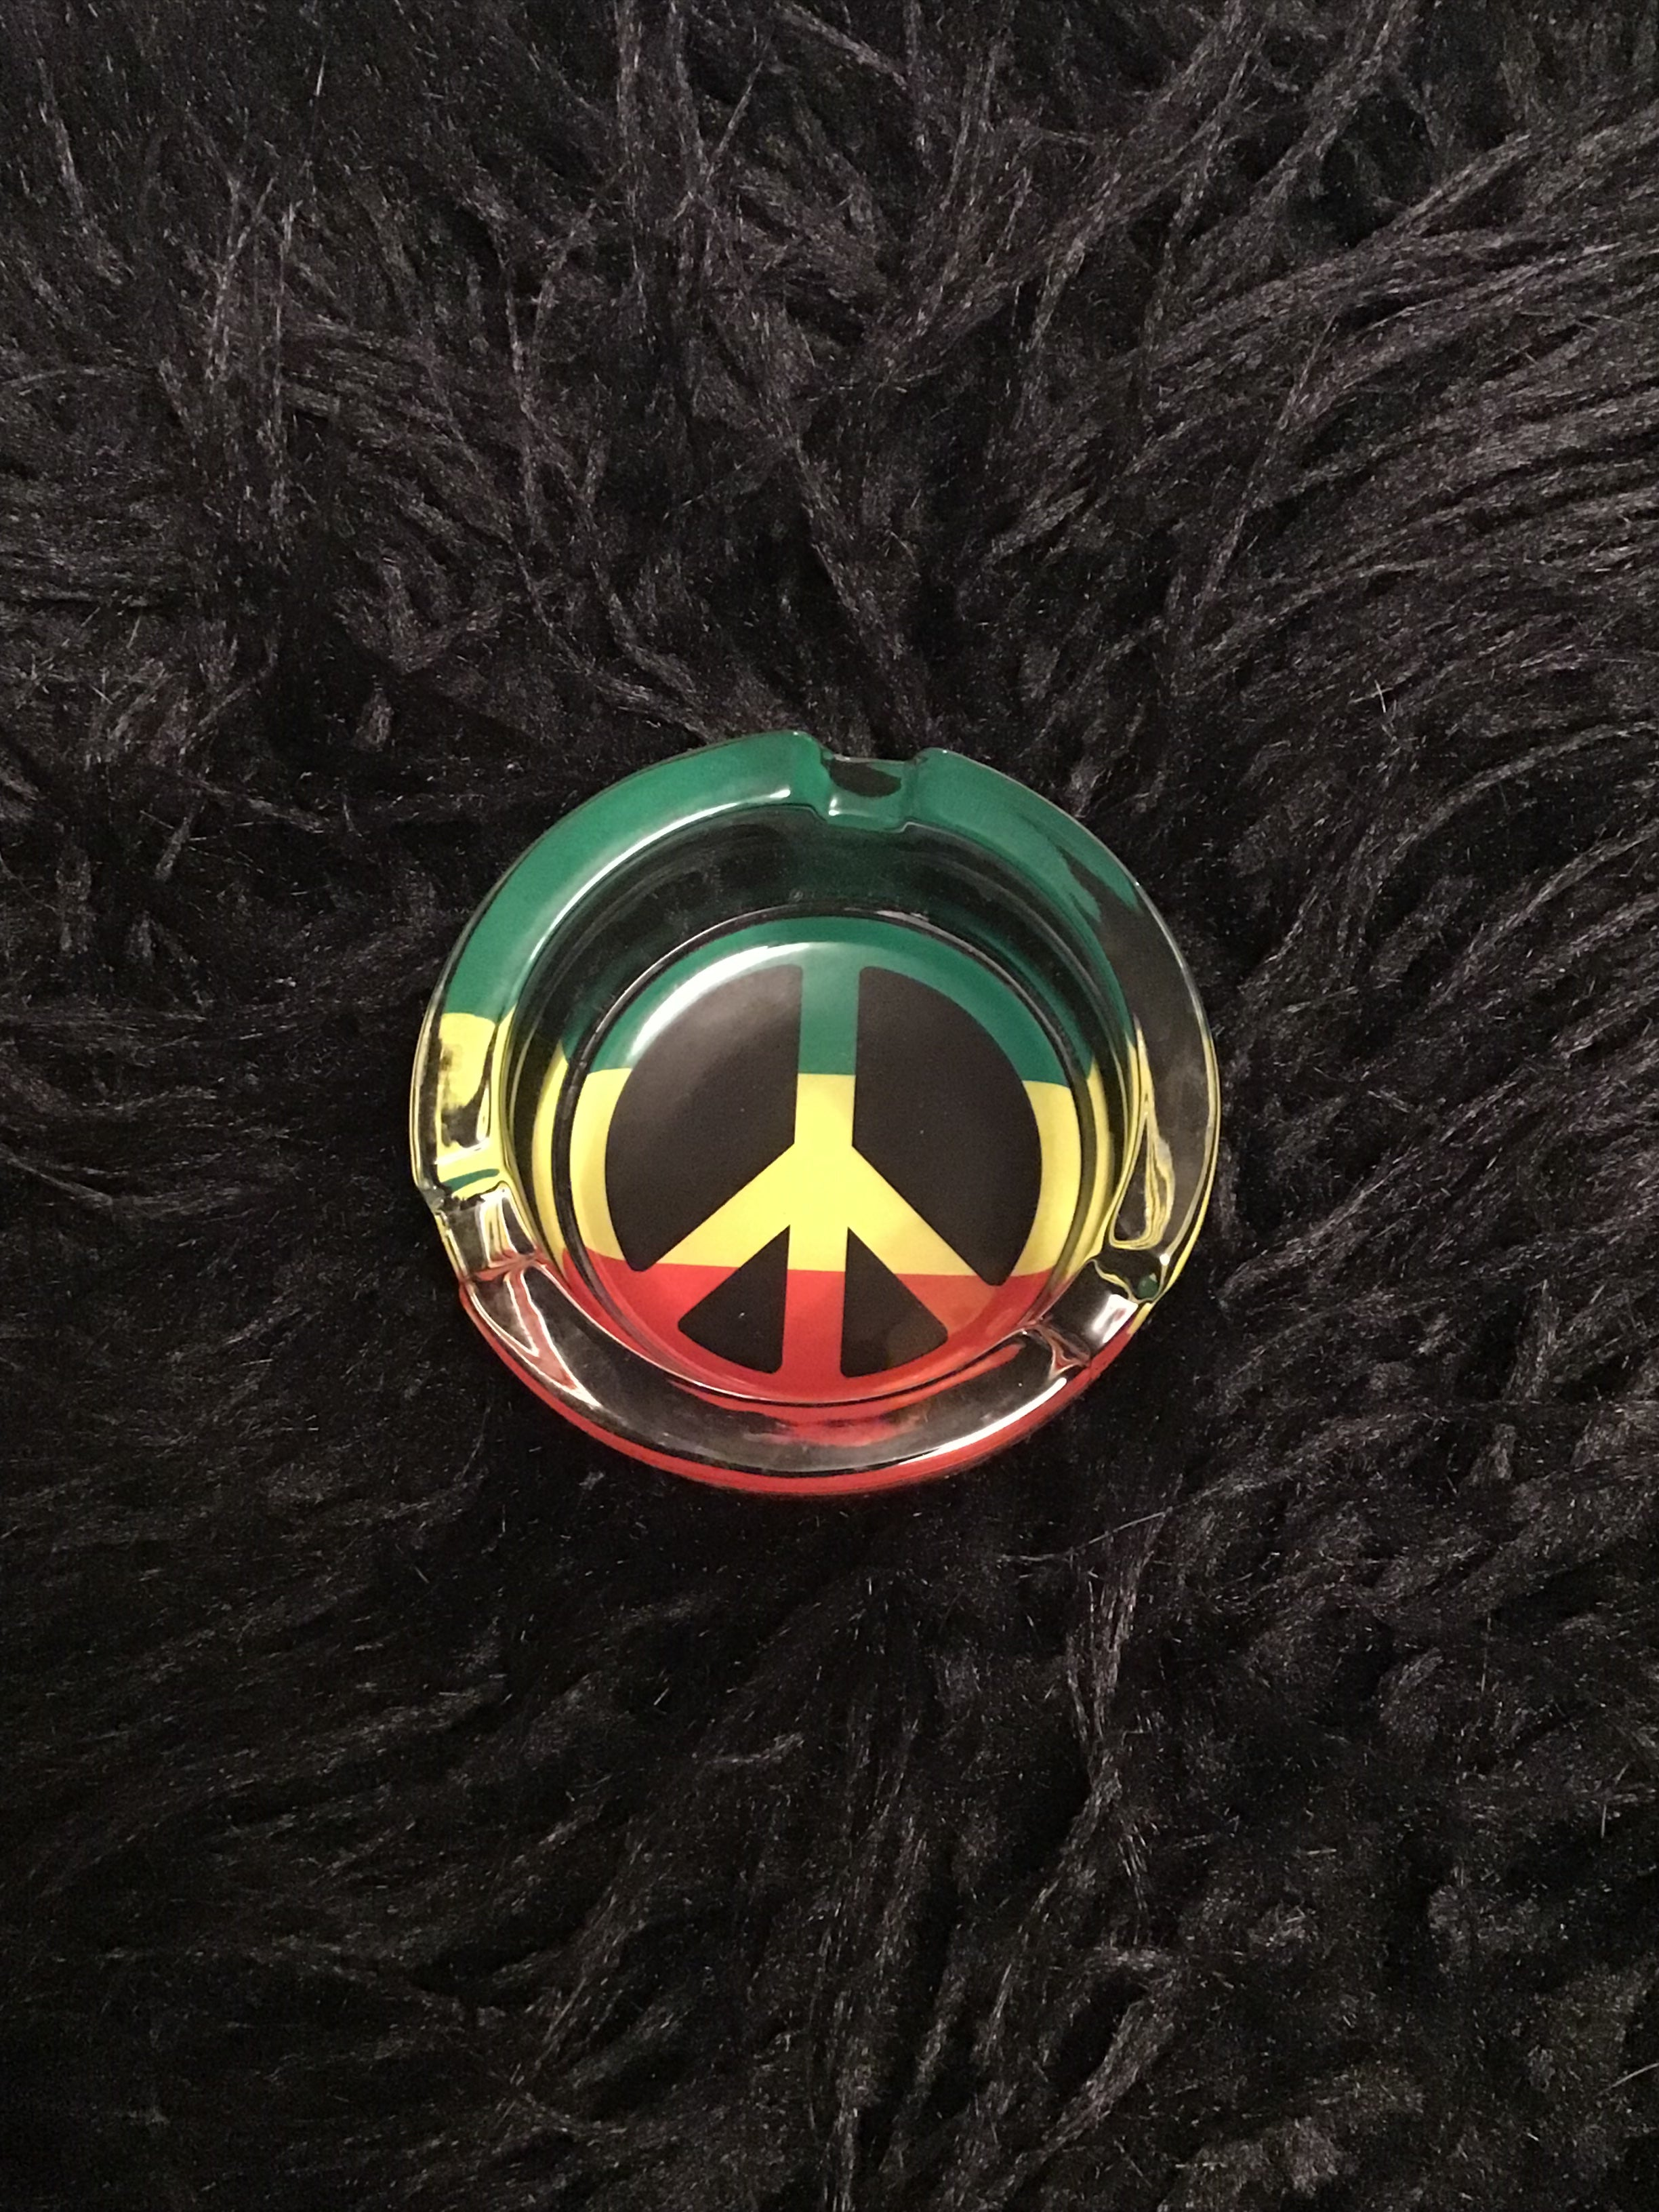 Glass Peace Sign Glow in the Dark Ashtray yoga, yoga smokes, tattoo, face, nails, nail, glass retail, online, web, weborder, website, tanks, lounge, odor, smoke shop near me, liquid smoke, smoke shop, lounge, smoke lounge, stoner, smoke, high, life, highlife, dabber, love, stoned, highsociety.